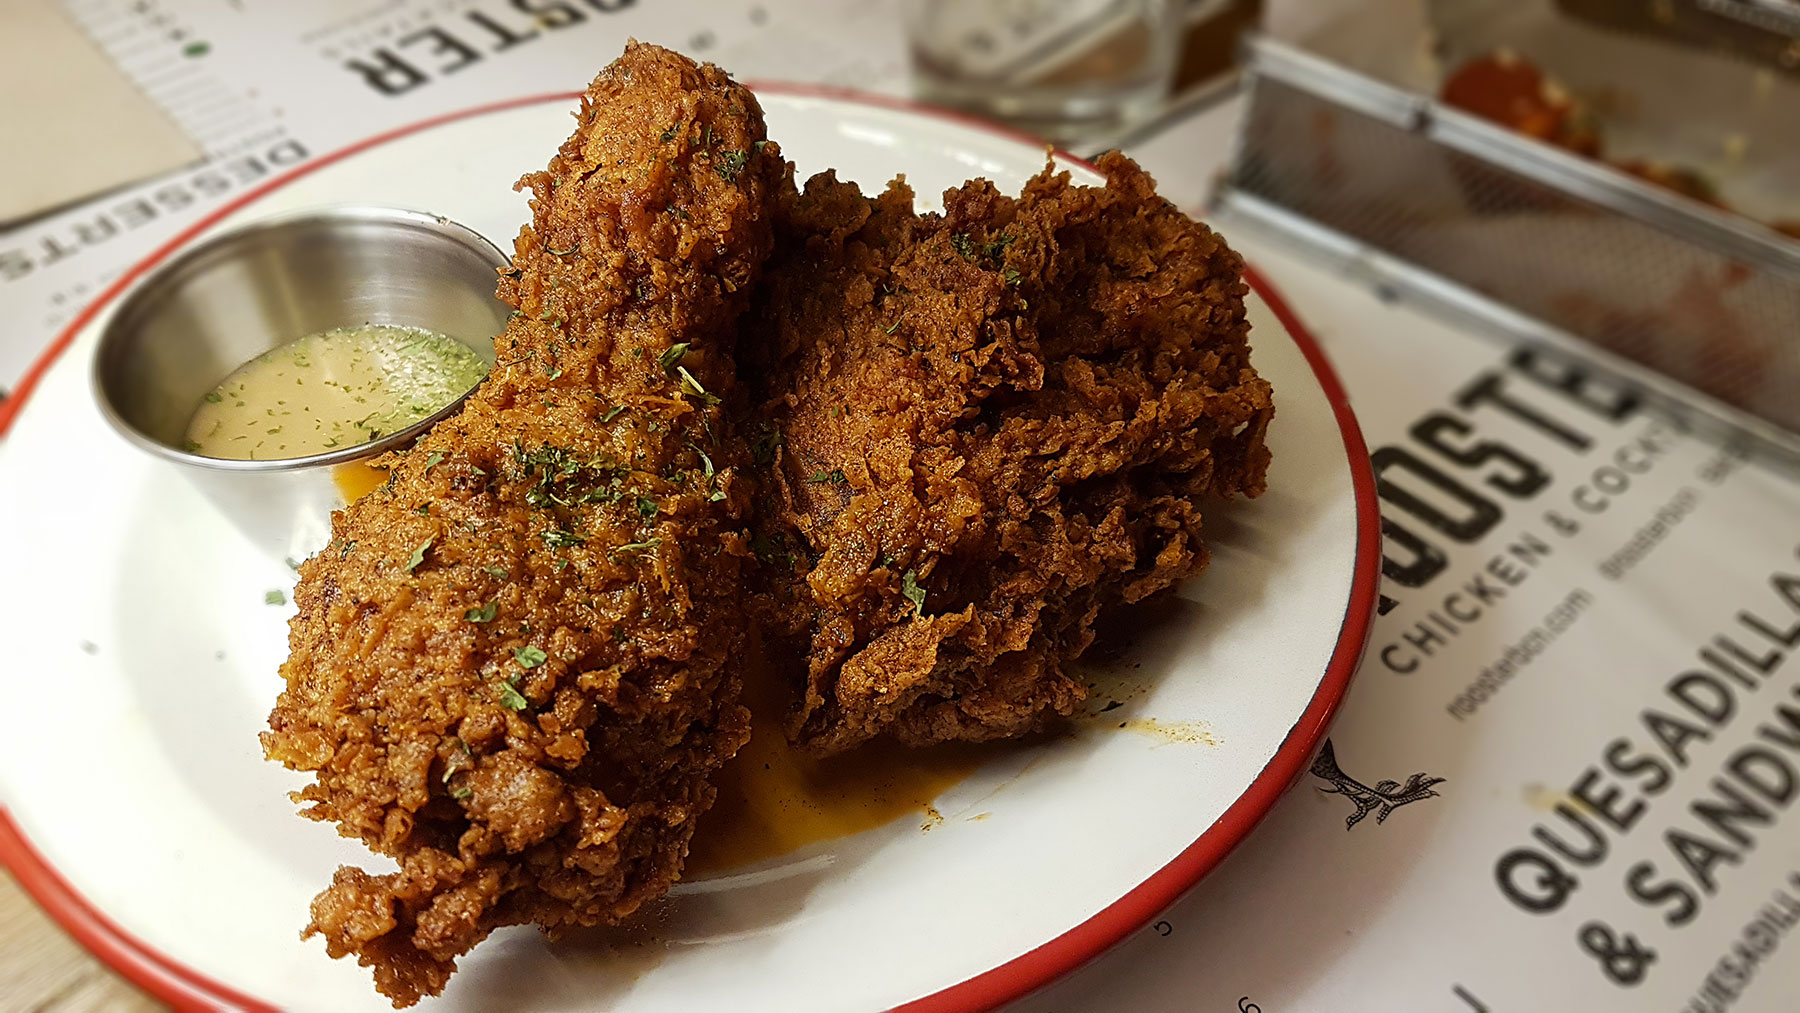 restaurante-rooster-barcelona-fried-chicken